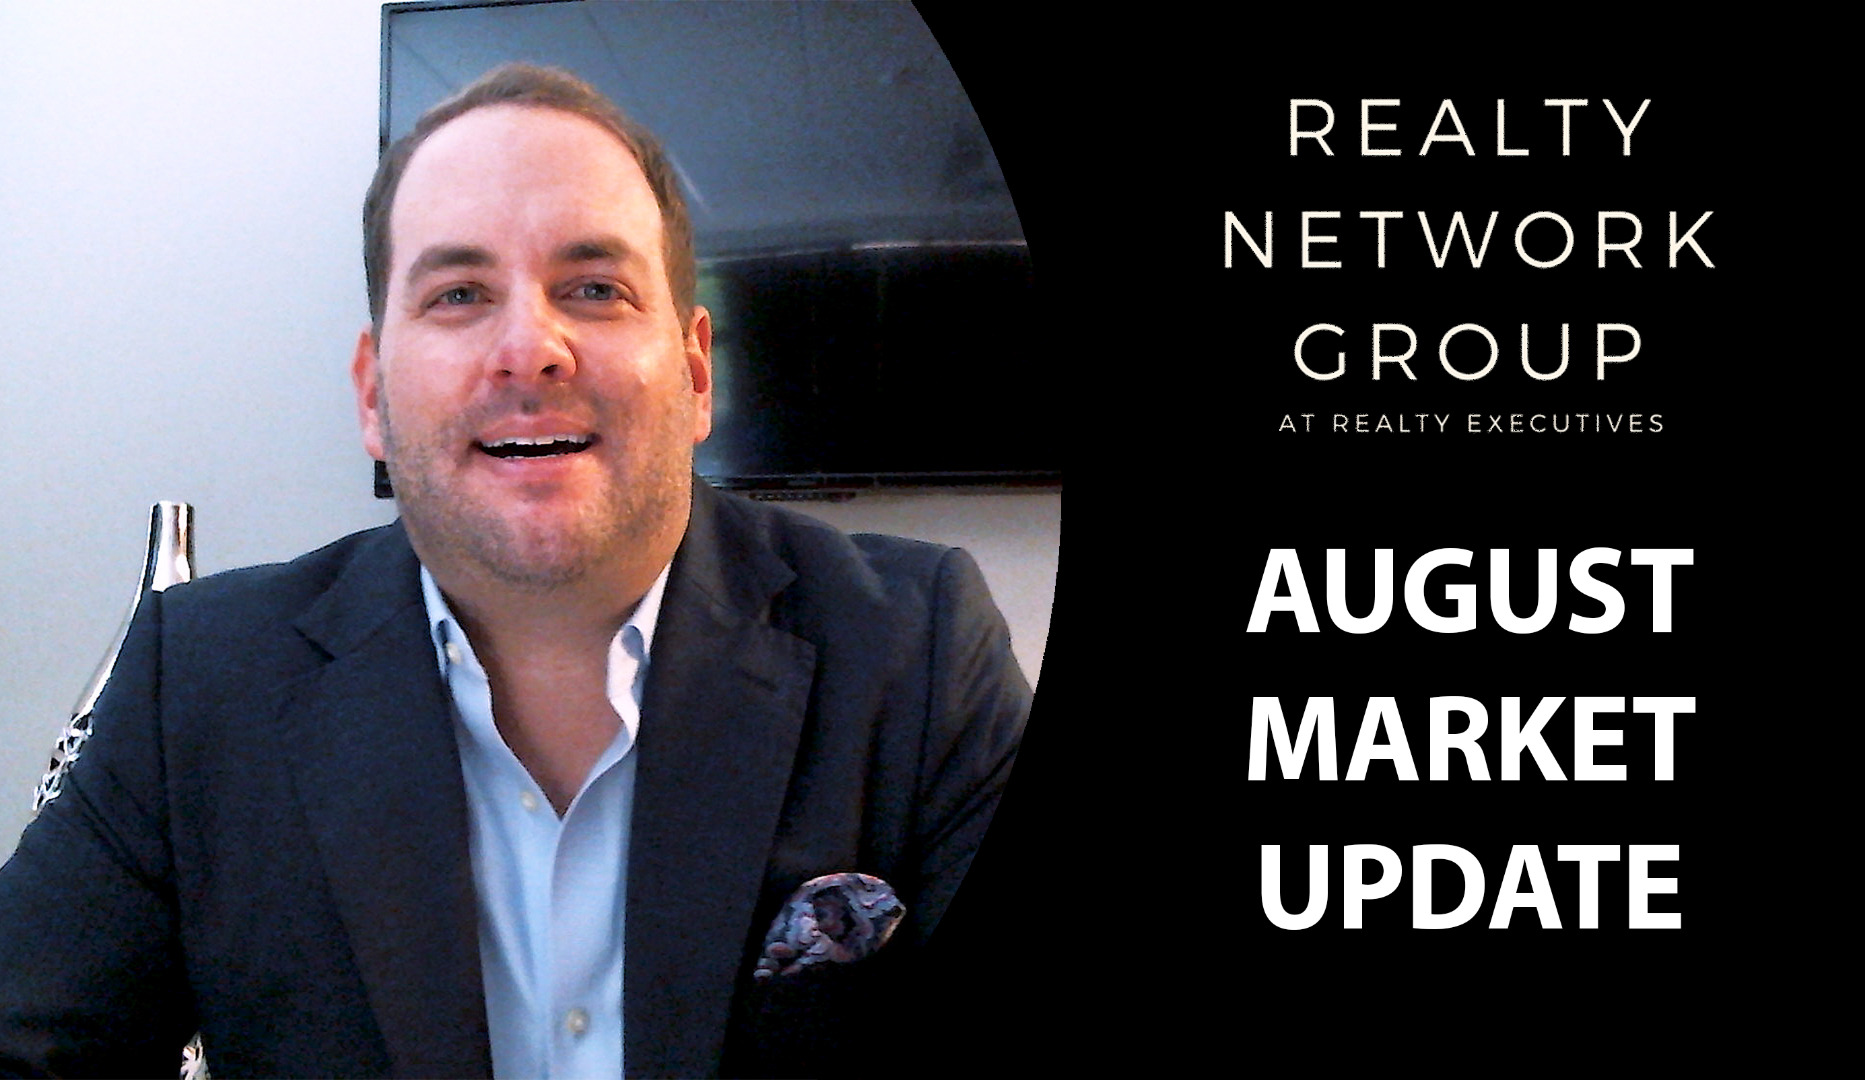 This August Market Update Is Hot off the Presses